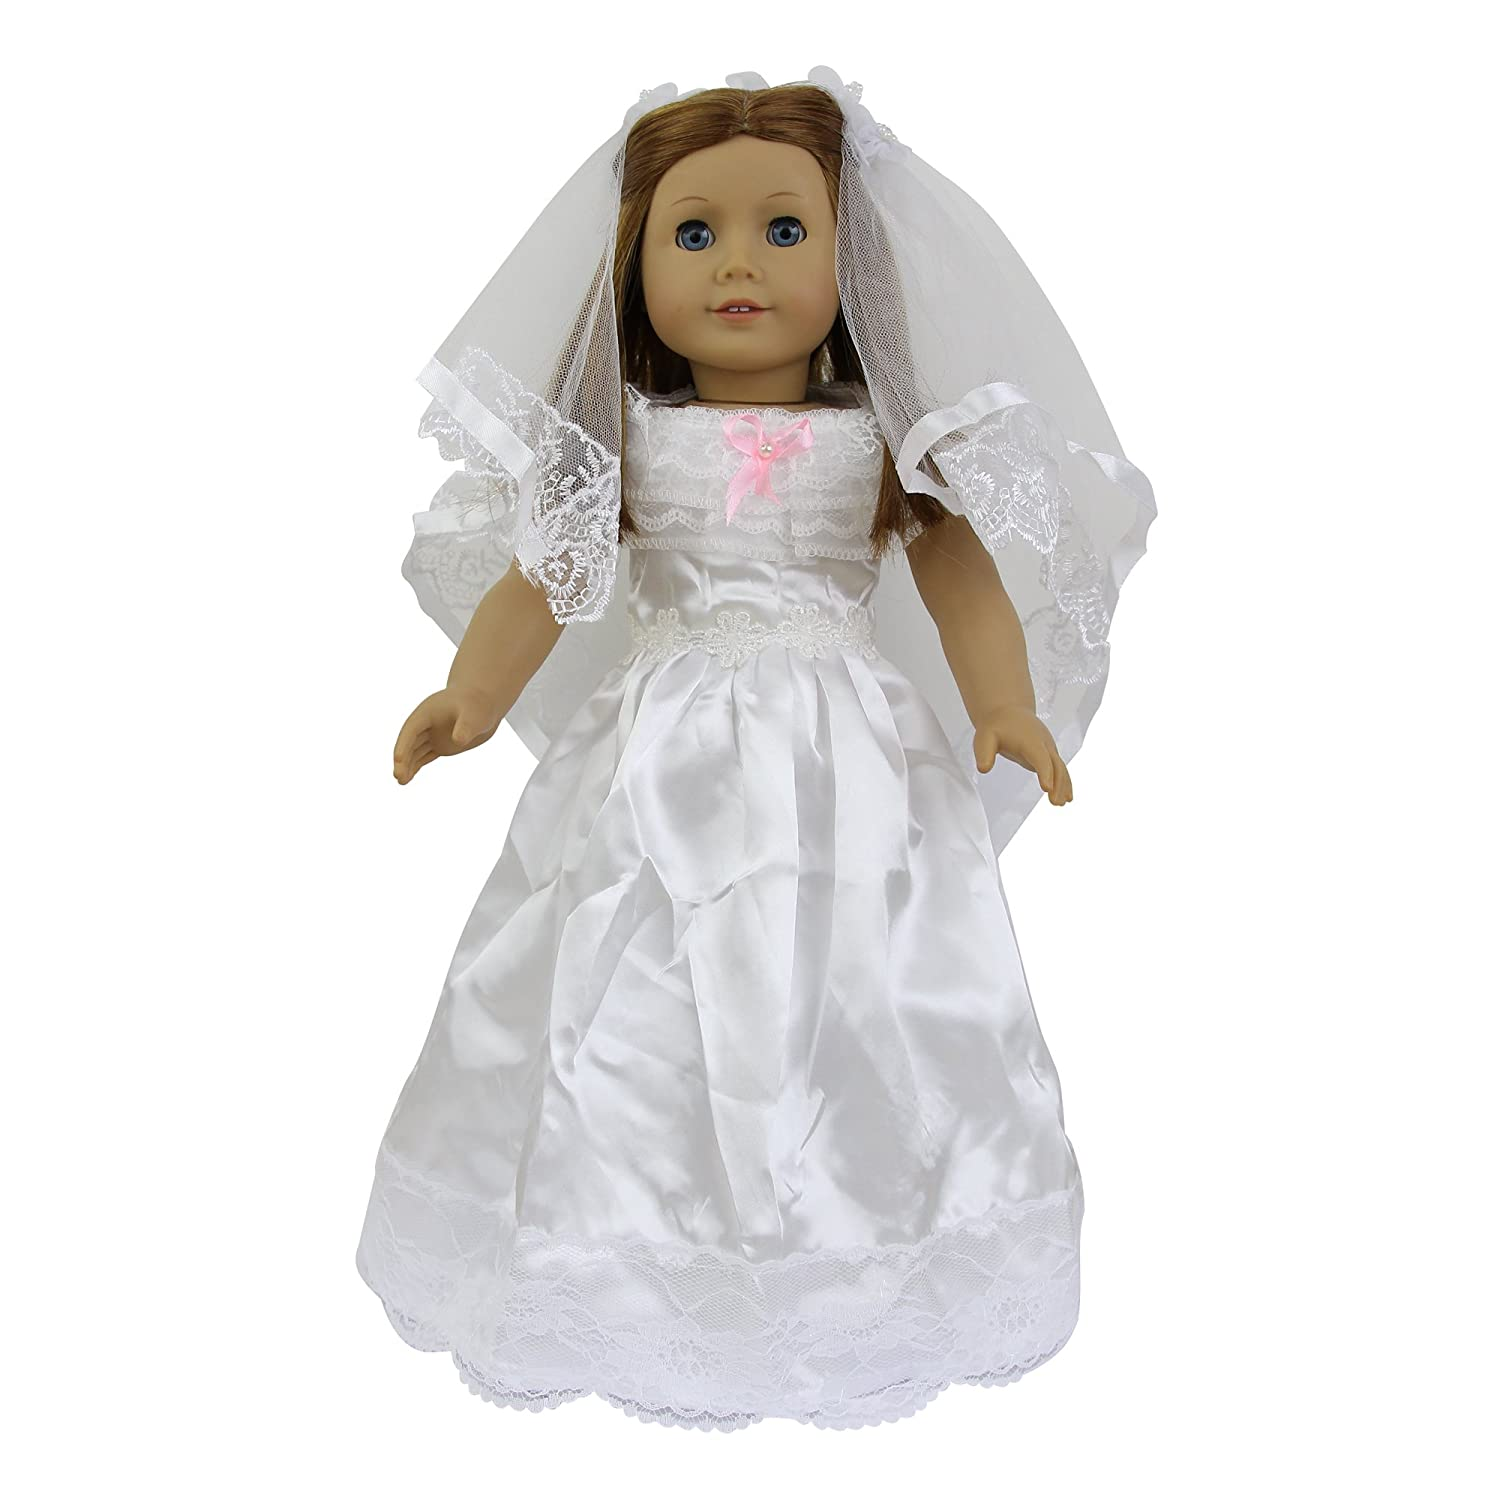 ZITA ELEMENT Doll Clothes -Princess Wedding White Dress + Veil Fits American Girl Doll, My Life Doll, Our Generation and other 18 inch Dolls XMAS GIFT